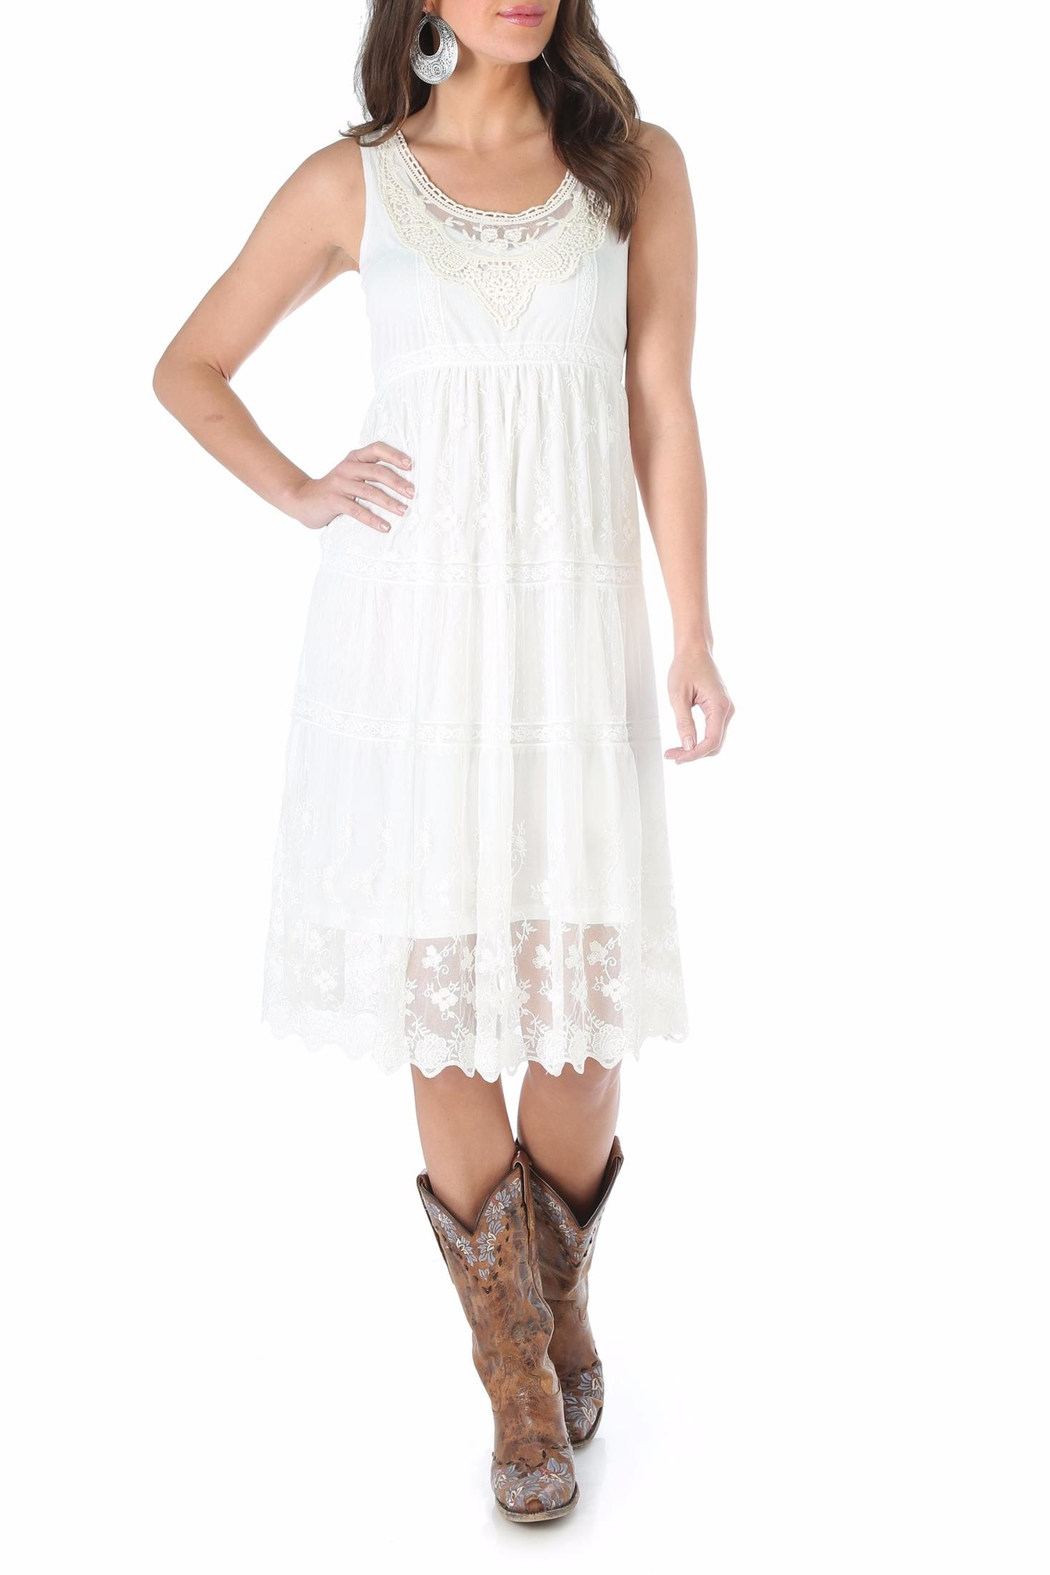 Wrangler Embroidered Lace Dress - Main Image